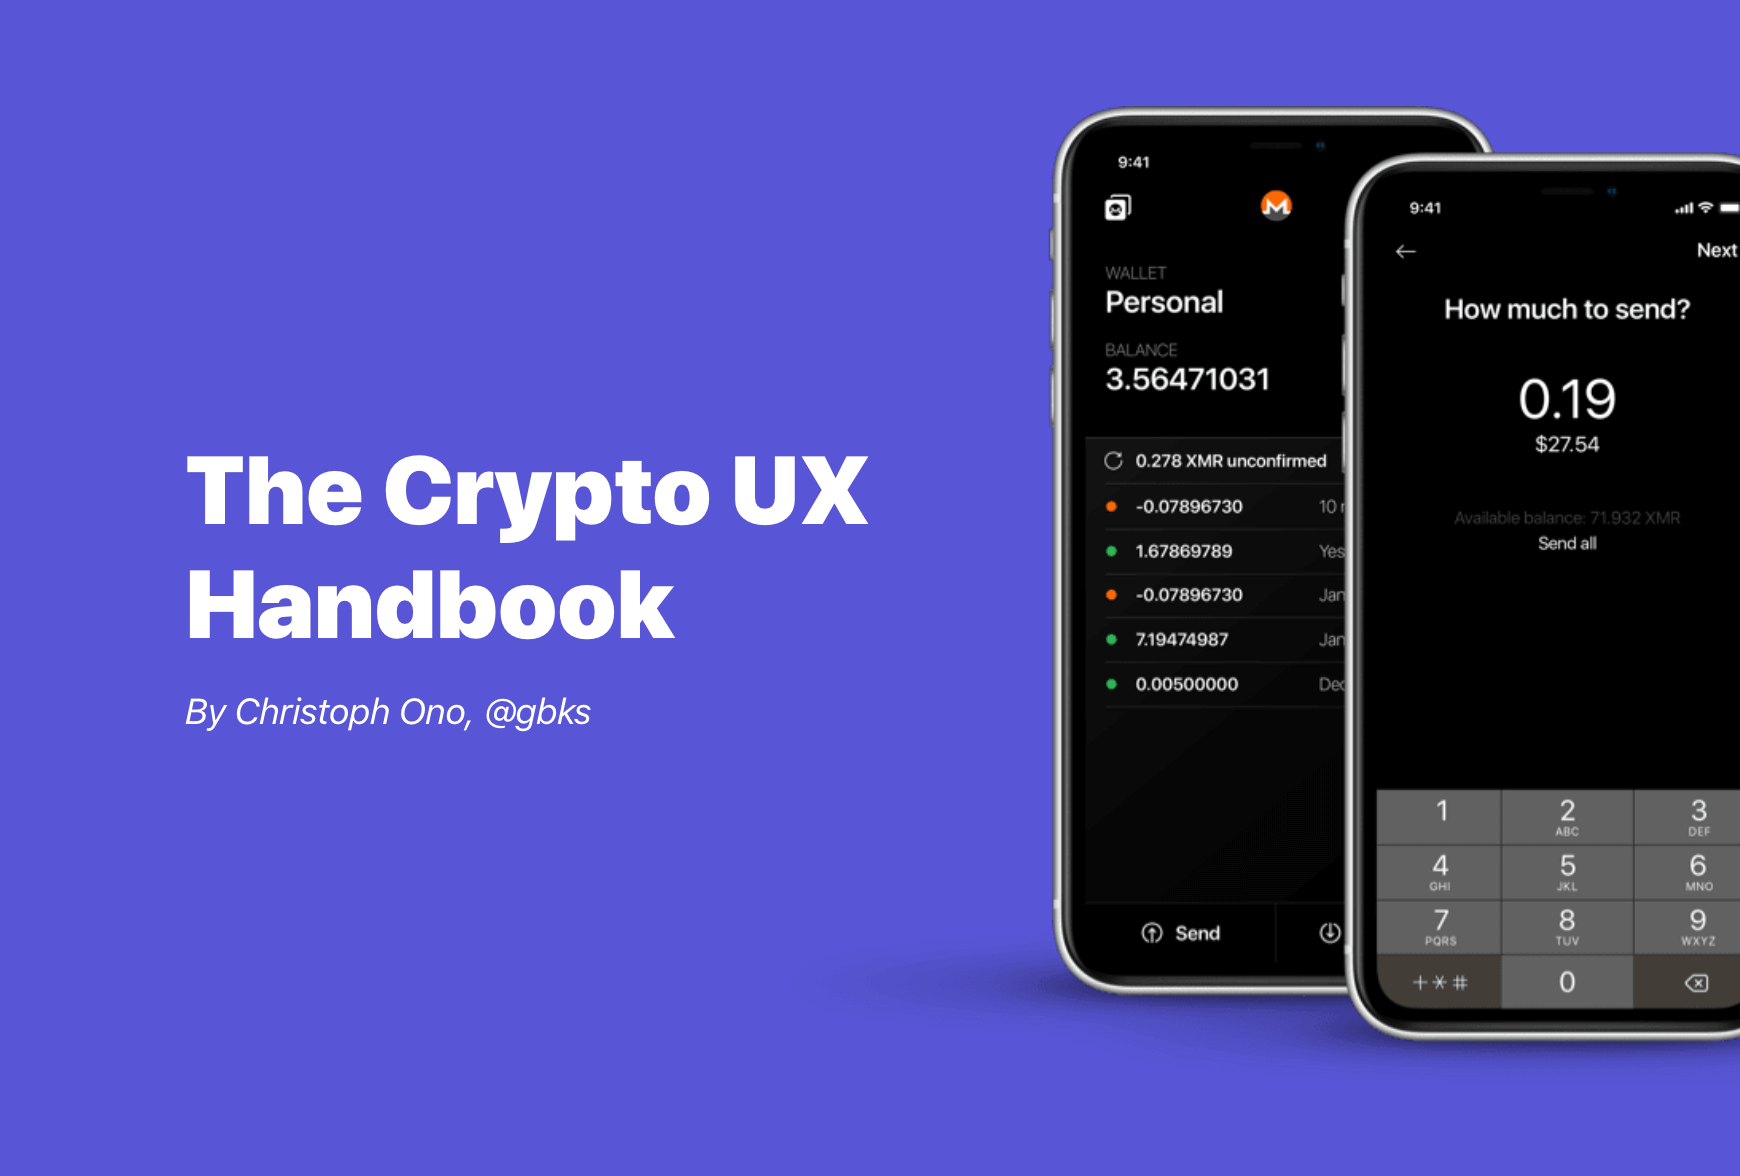 The Crypto UX Handbook by @gbks